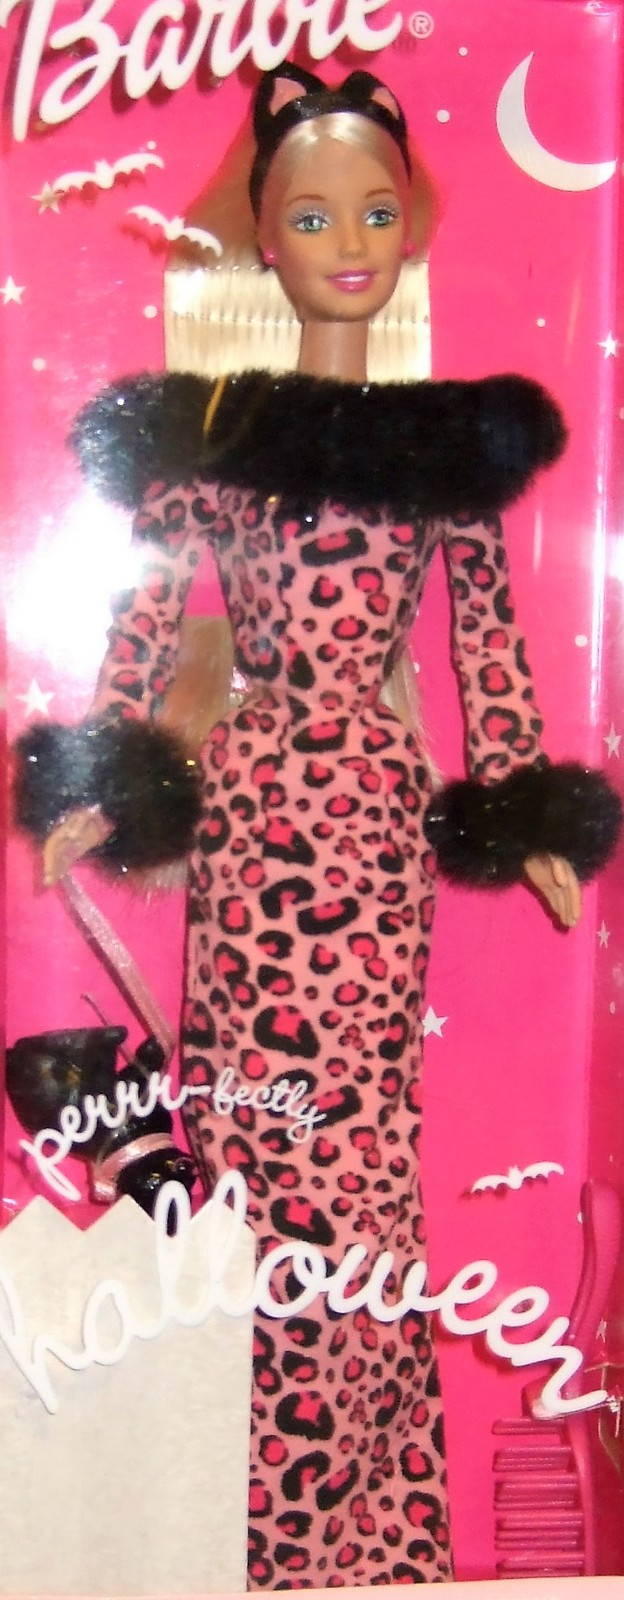 Barbie Doll - Perr-fectly Halloween (Target Special Edition) image 5